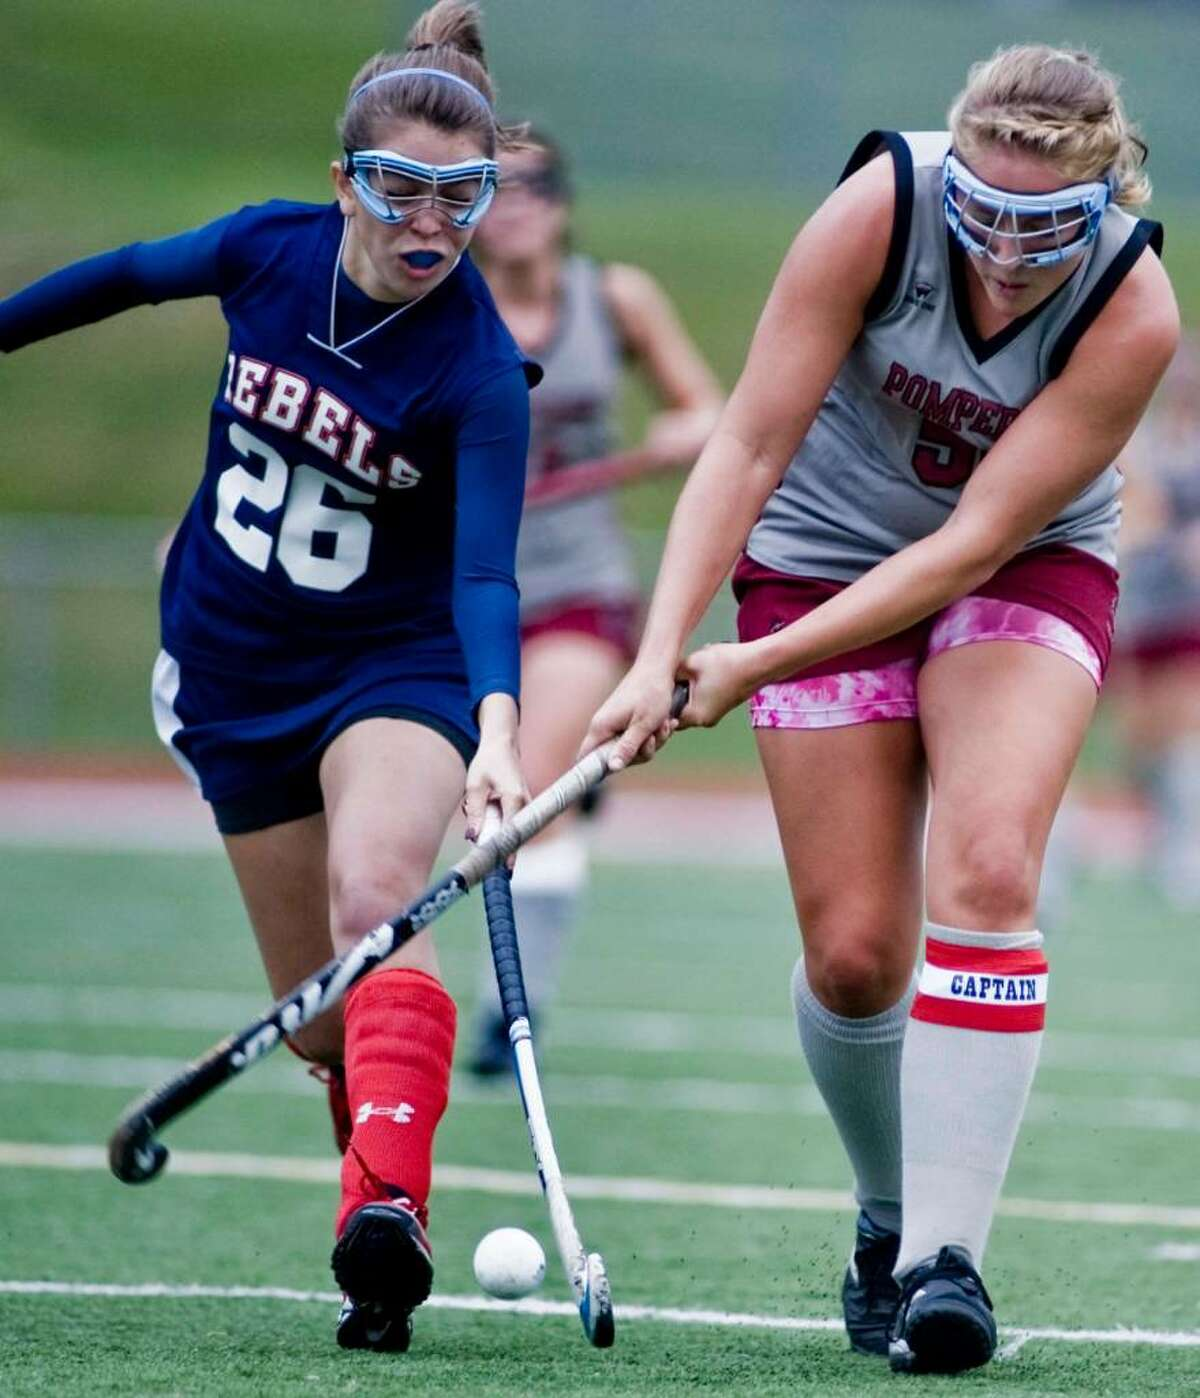 New Fairfield's Karli Petrone and Pomperaug's Megan Silverstein fight for the ball during a field hockey game at Pomperaug. Tuesday, Sept. 29, 2009